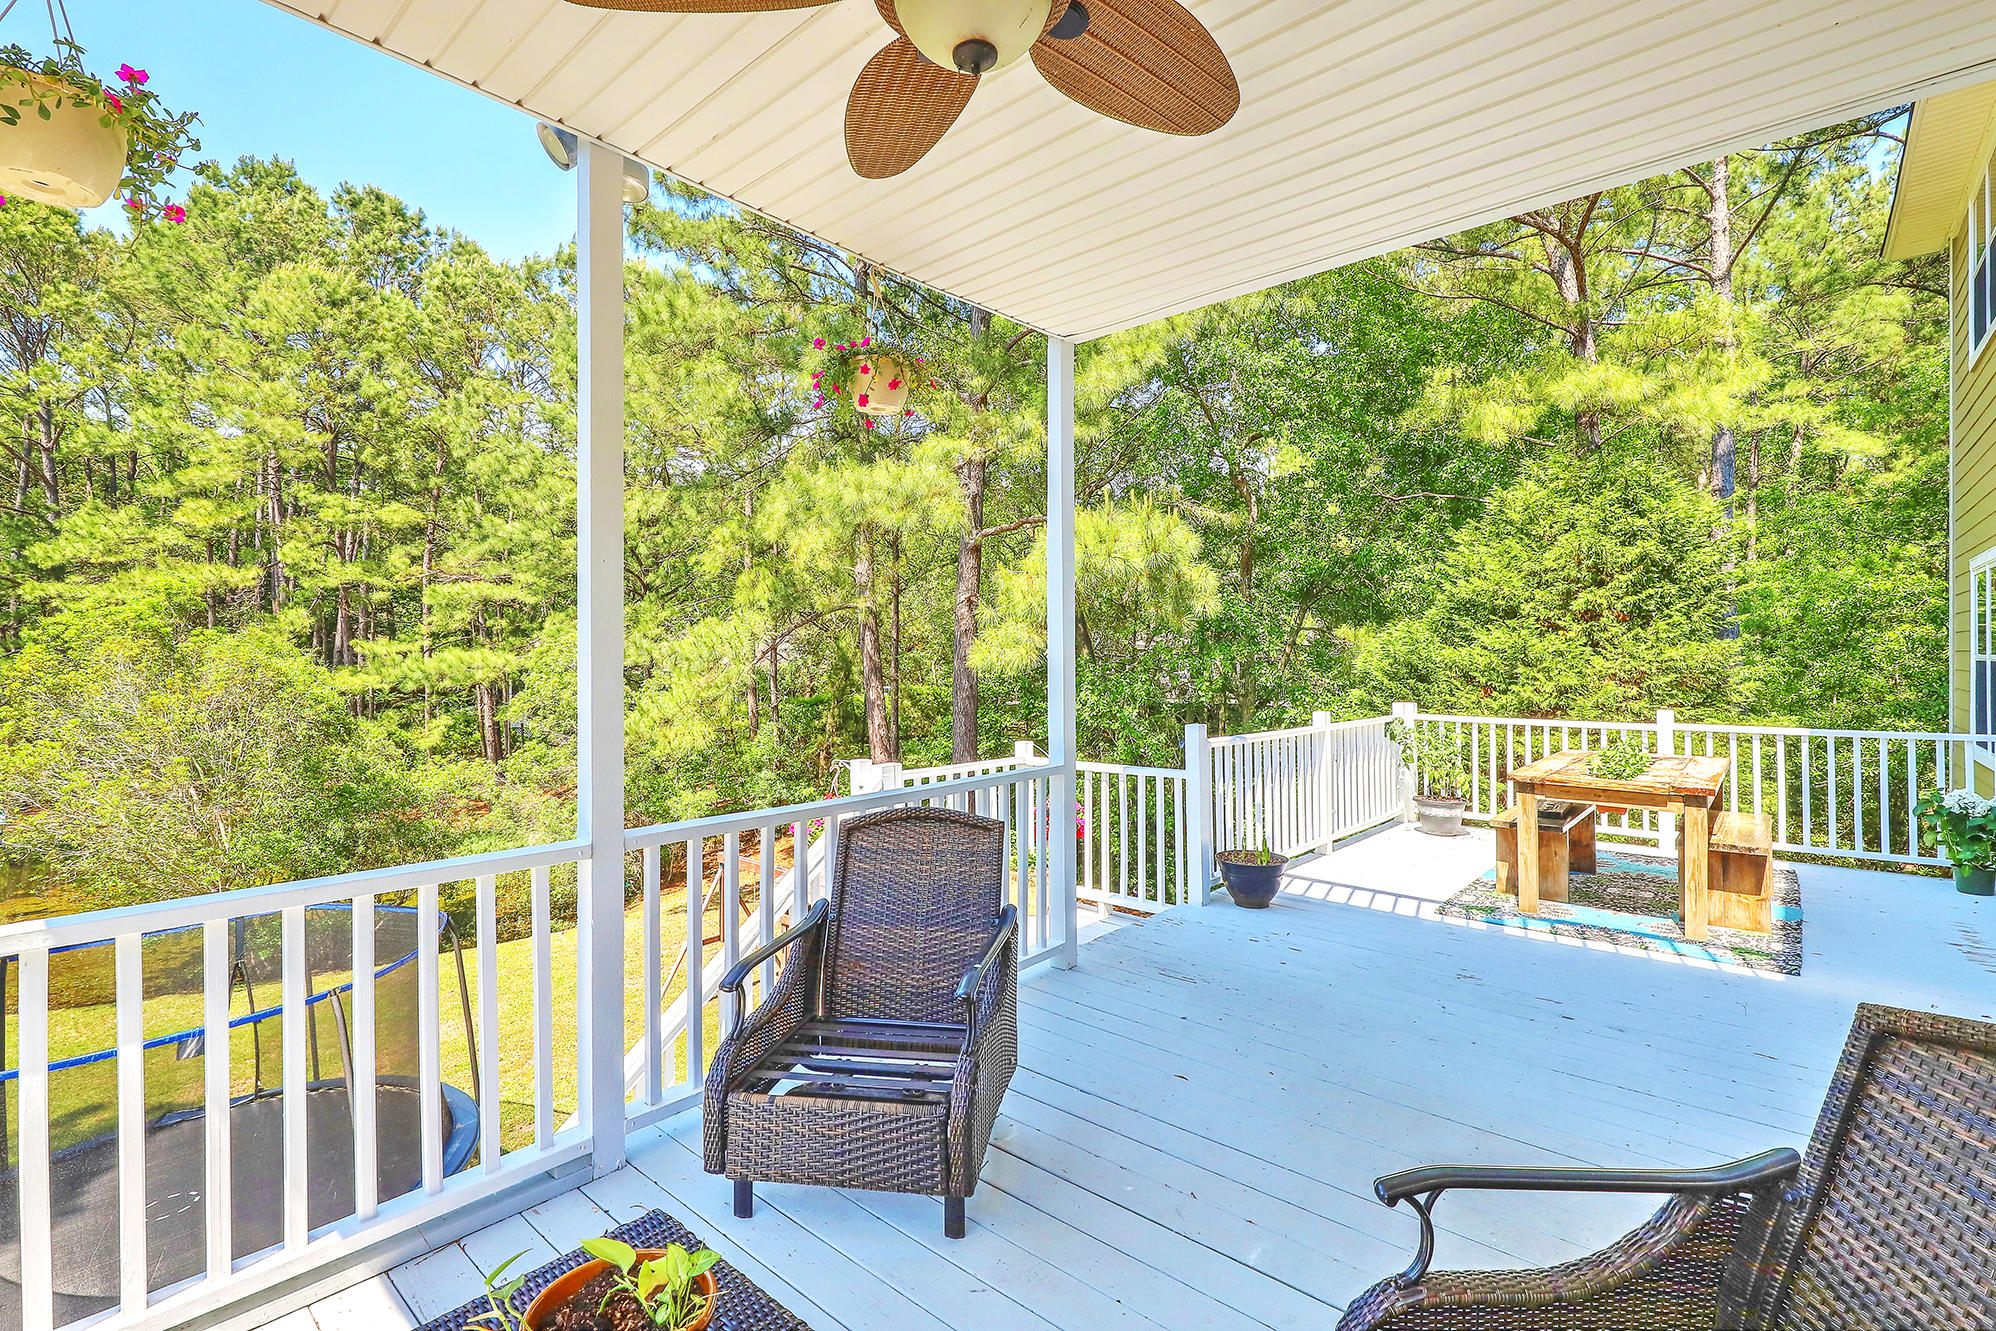 Stono Ferry Homes For Sale - 5104 St Ann, Hollywood, SC - 48